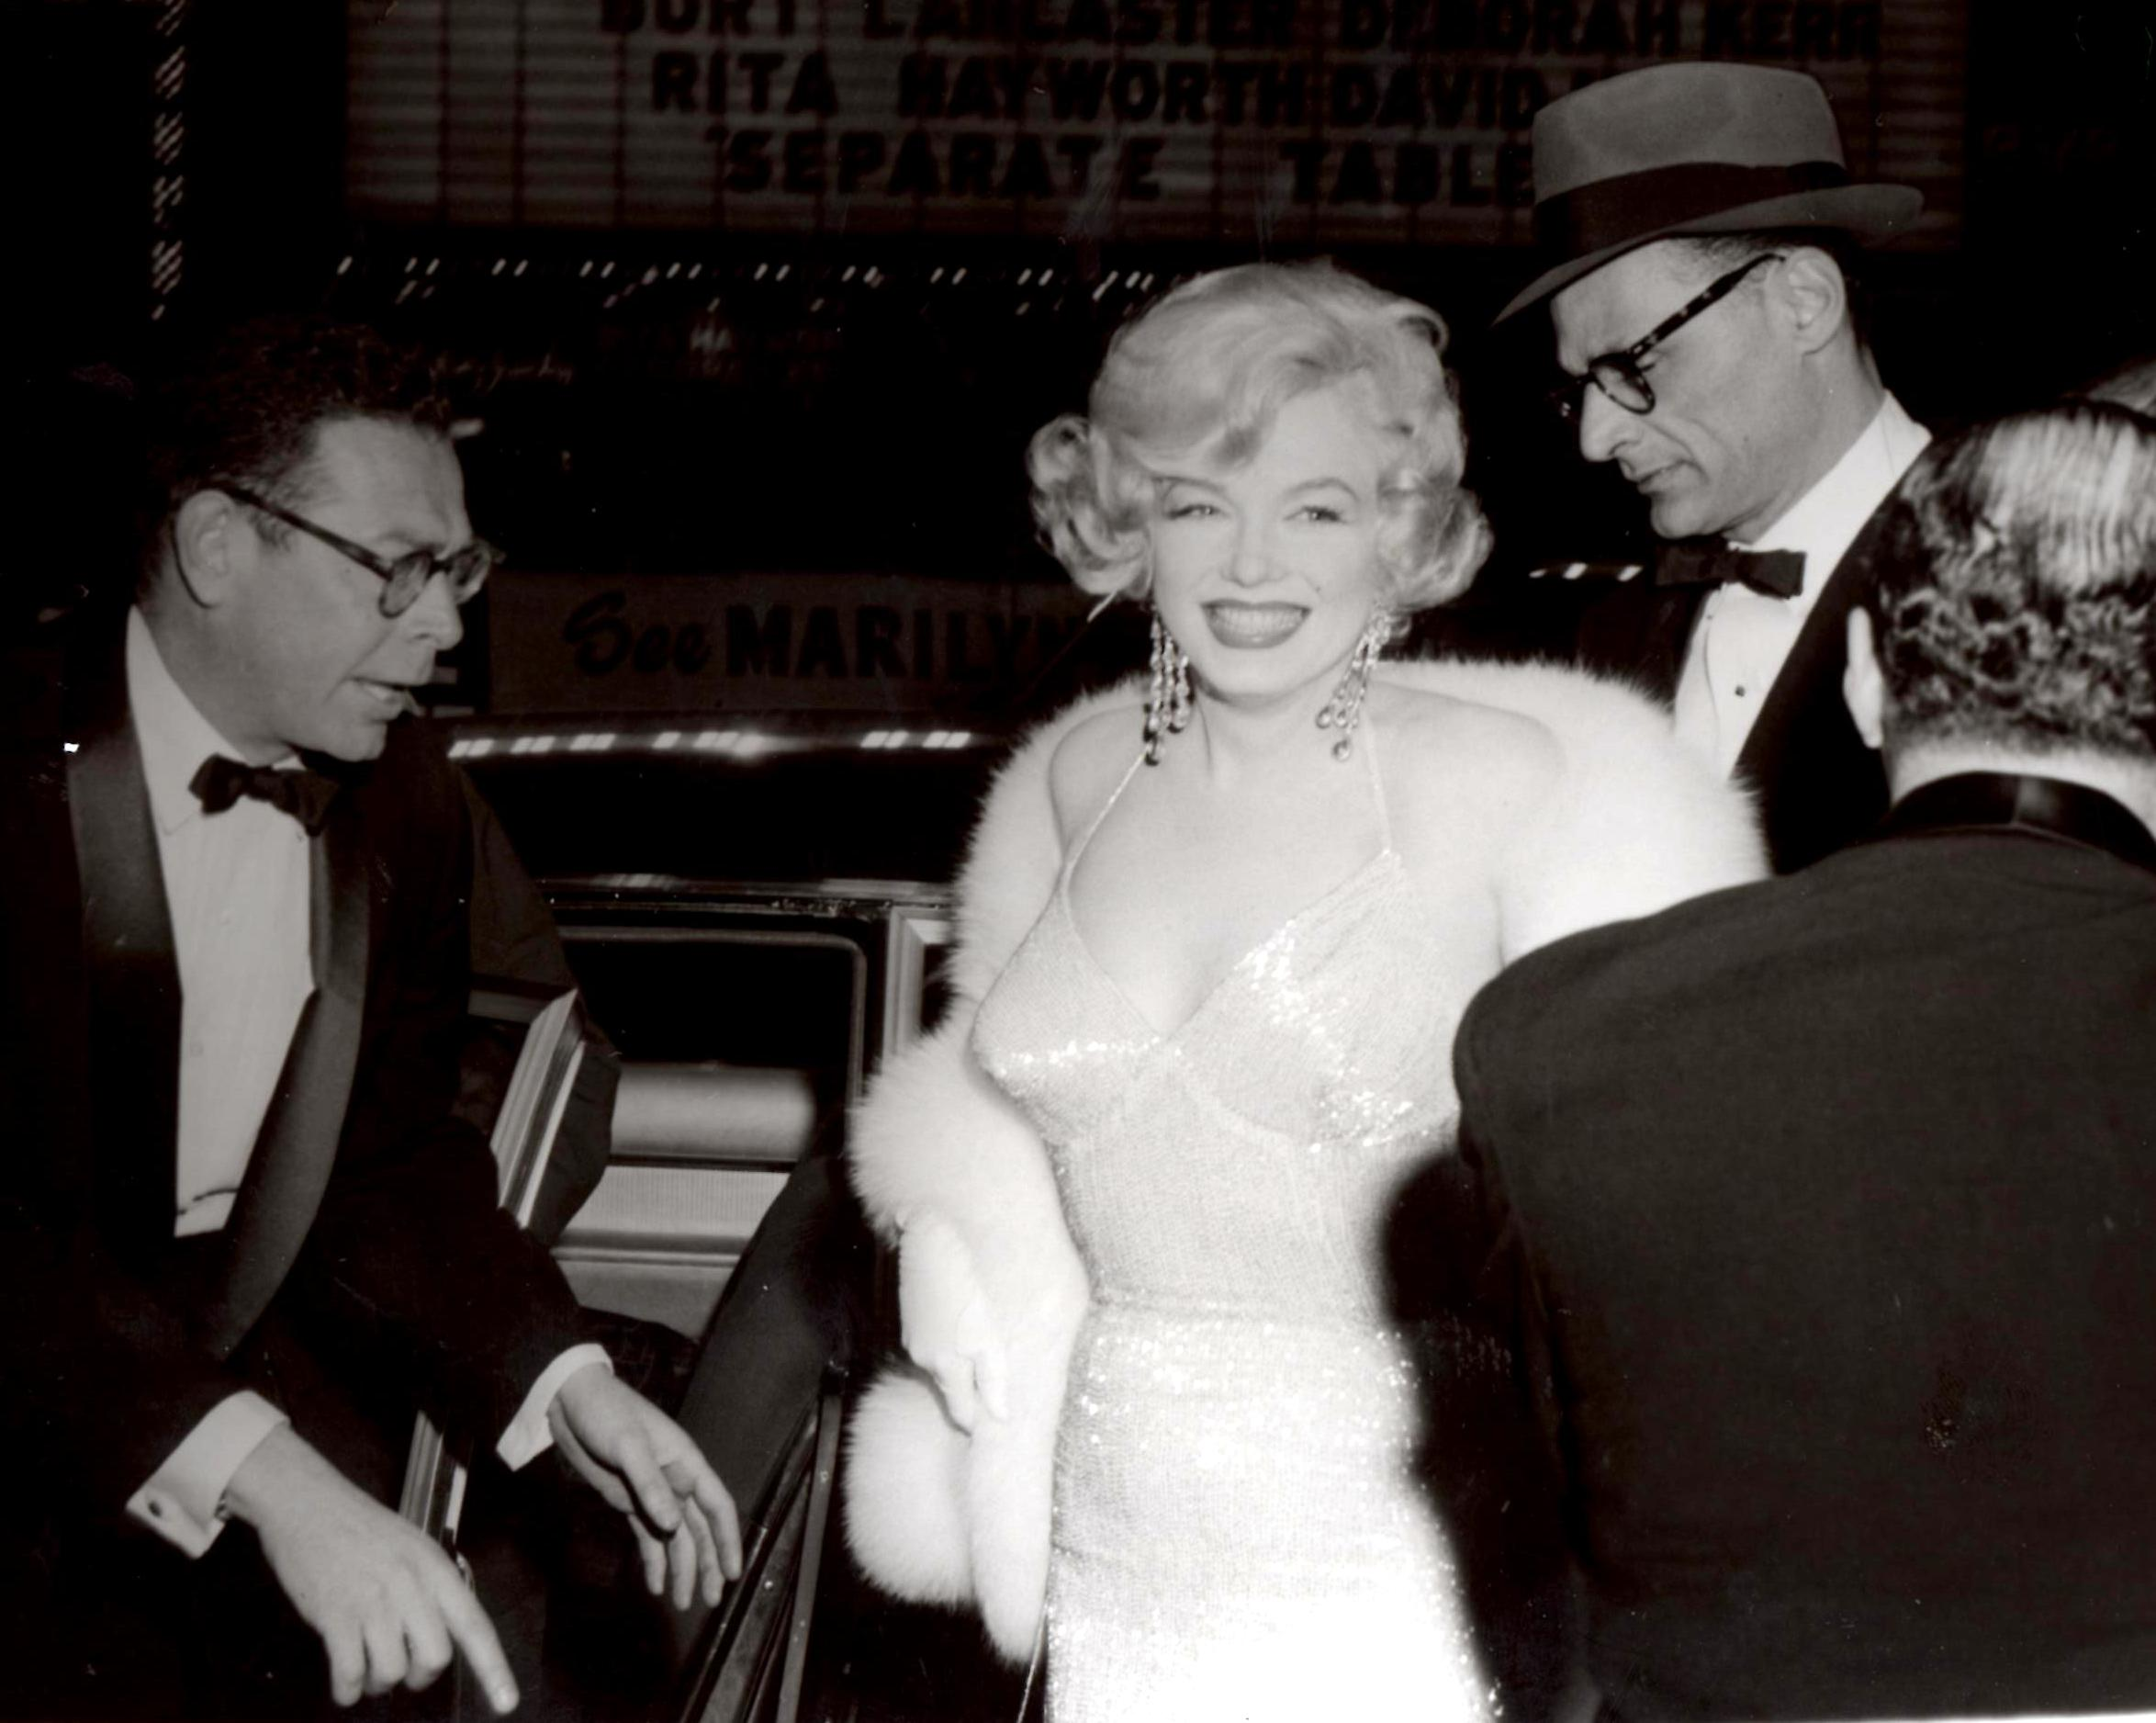 Marilyn Monroe and Arthur Miller (PHOTO BY BARRY TAUB)